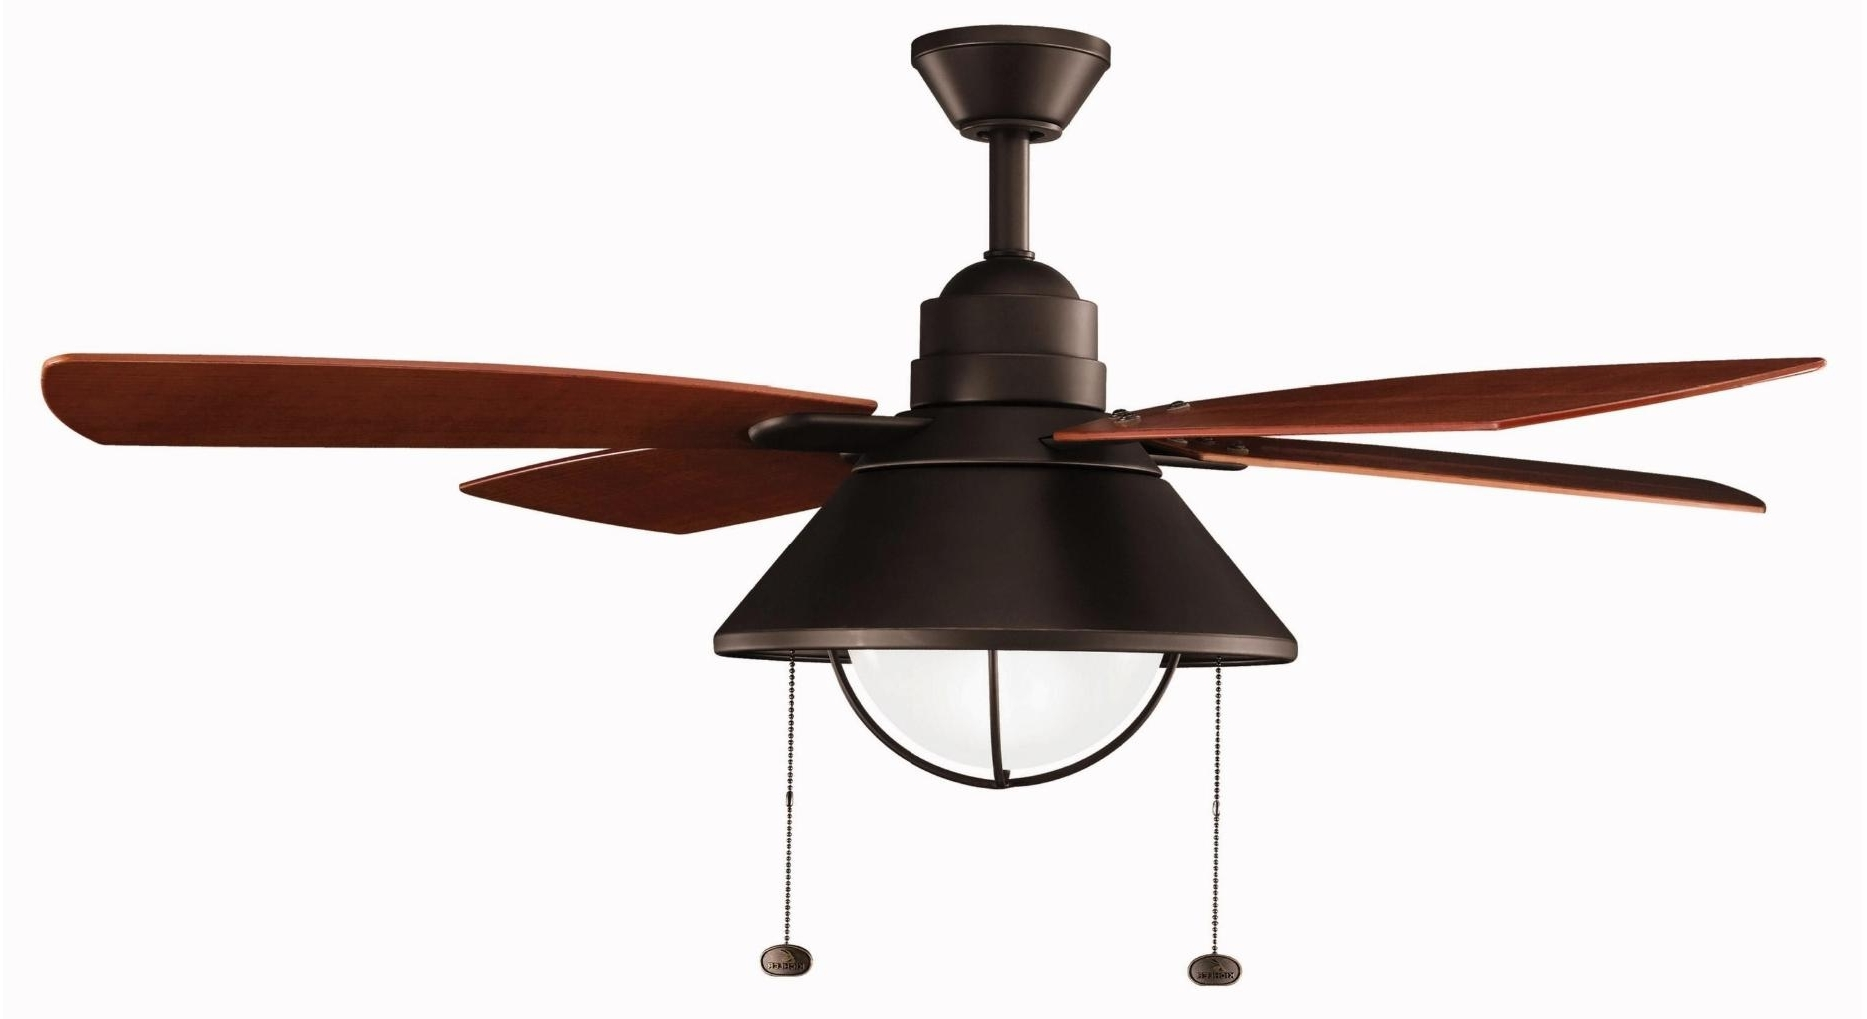 Newest Ceiling Fans Door Outdoor Ceiling Fans With Light Trend In Tray Regarding Black Outdoor Ceiling Fans With Light (View 19 of 20)